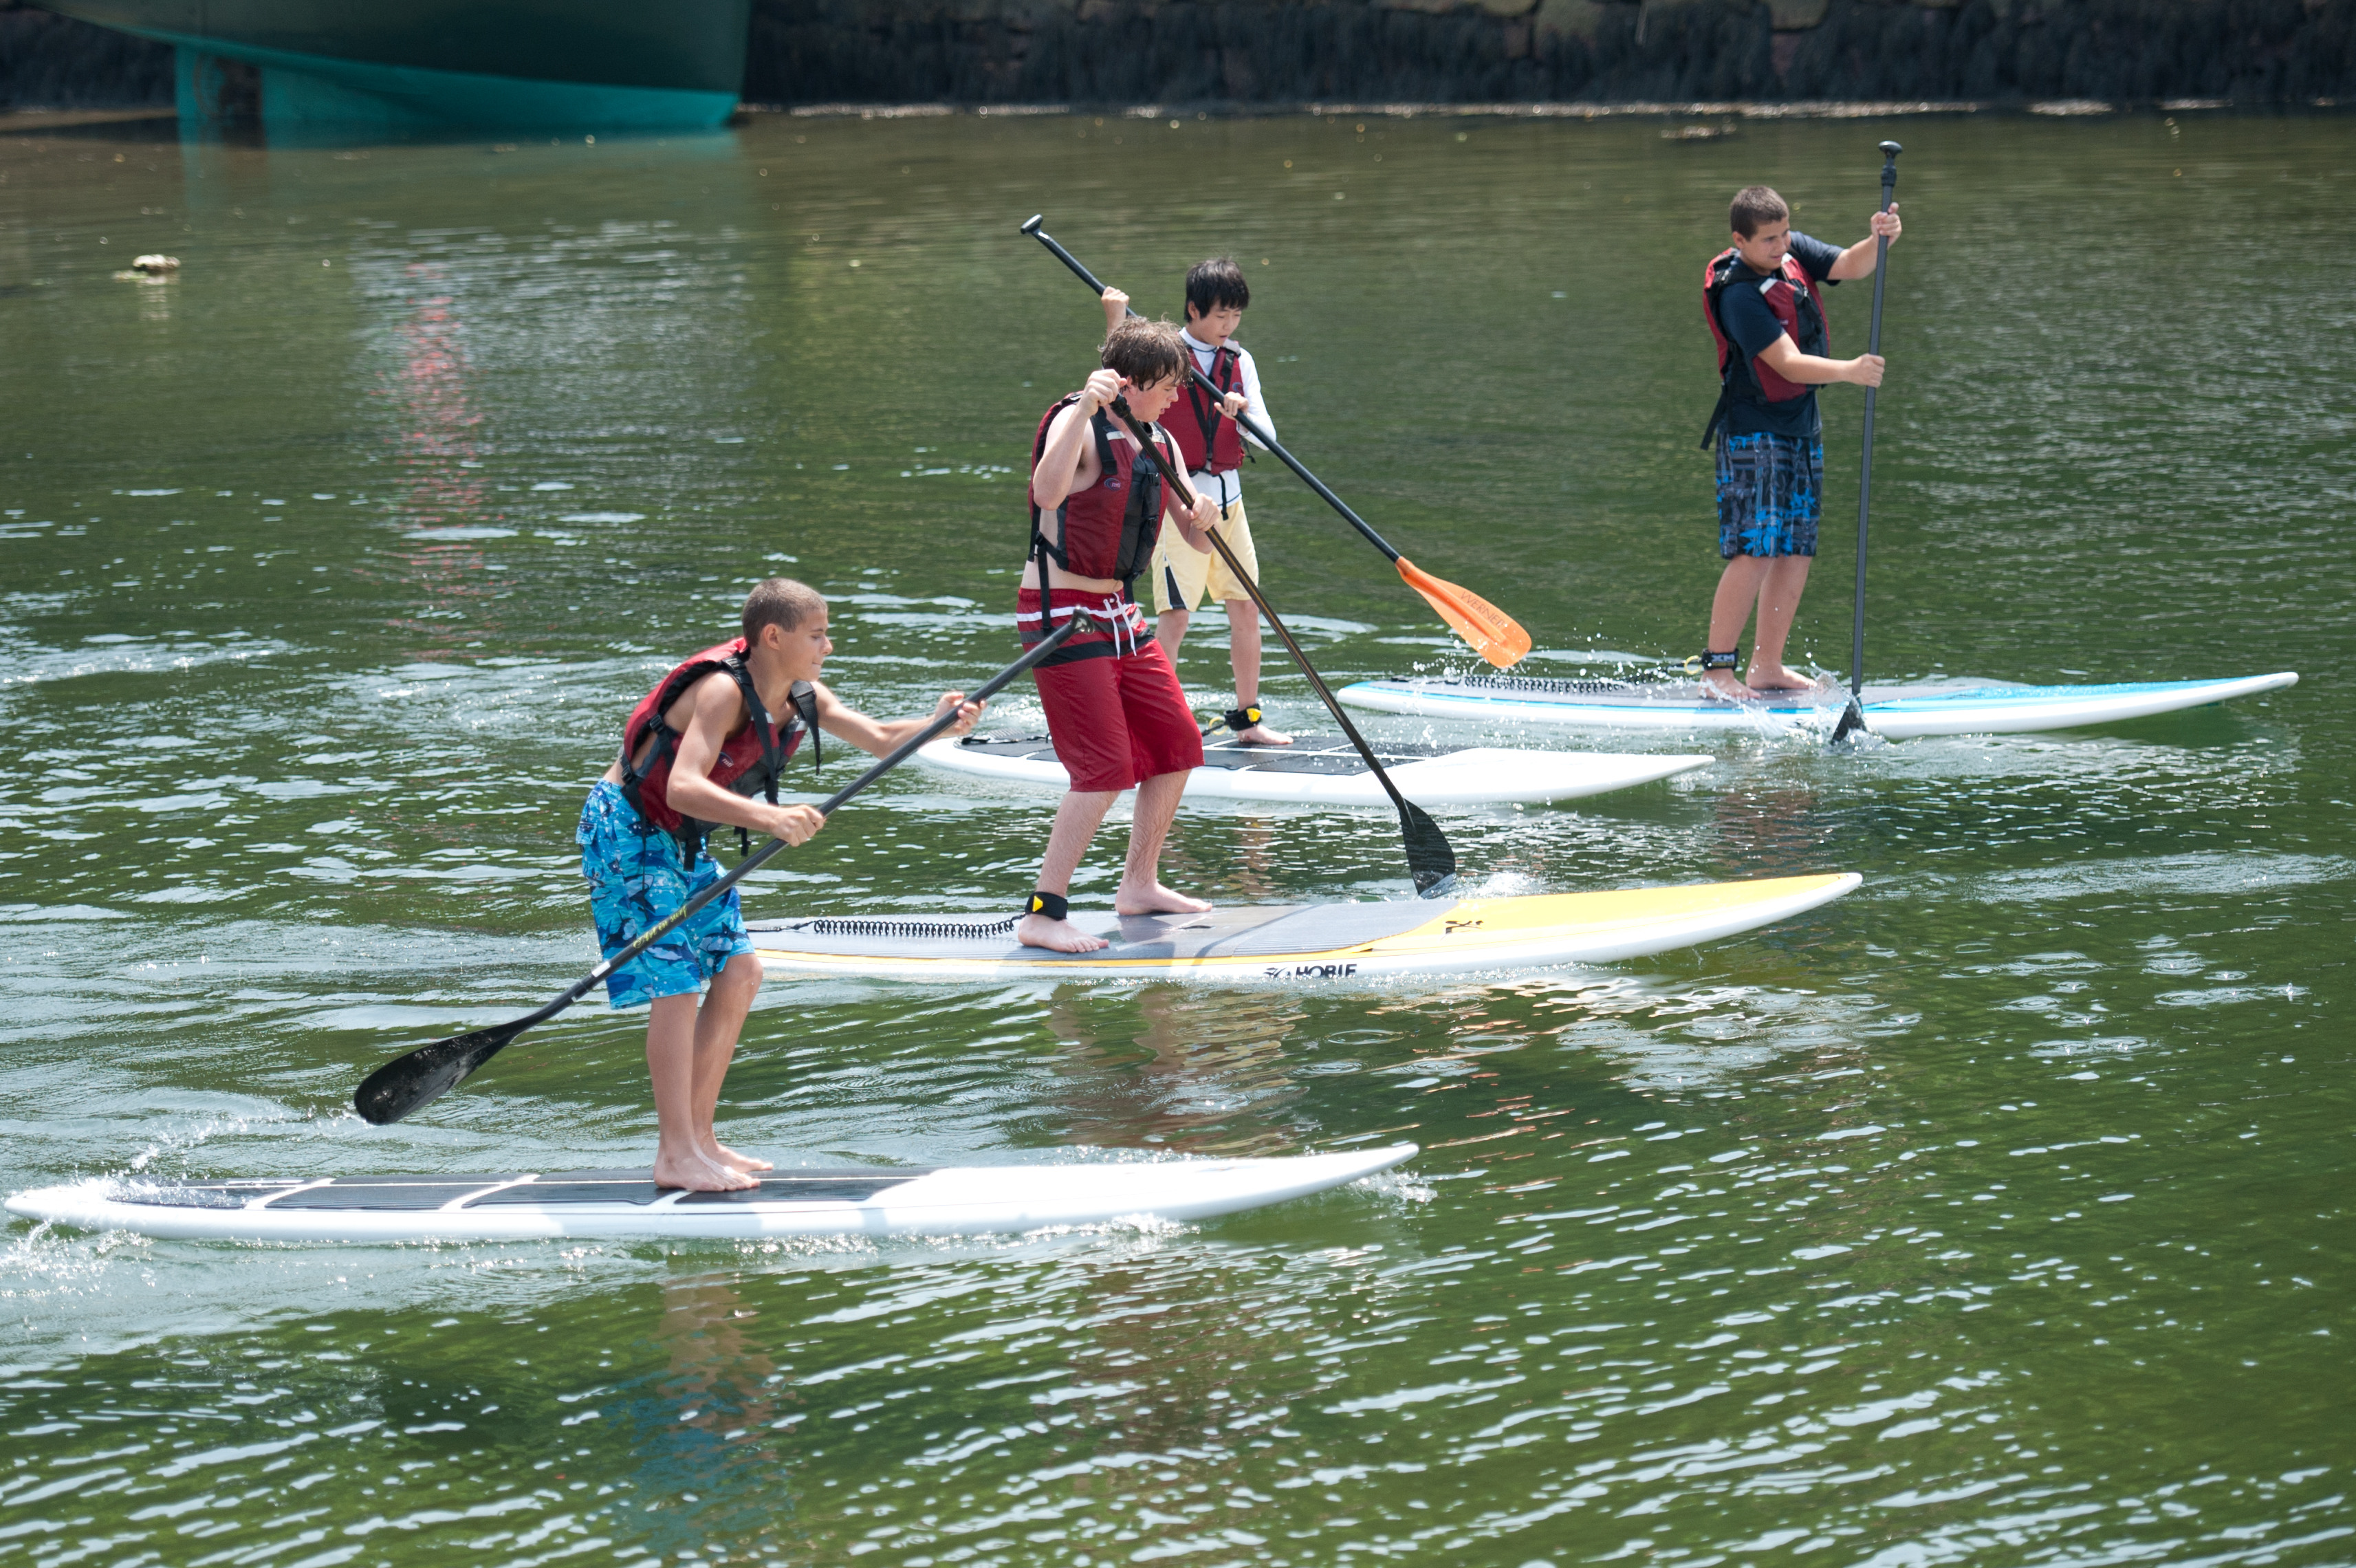 Summer Program - Water Sports | Beaver Summer Camp: Extreme Sports